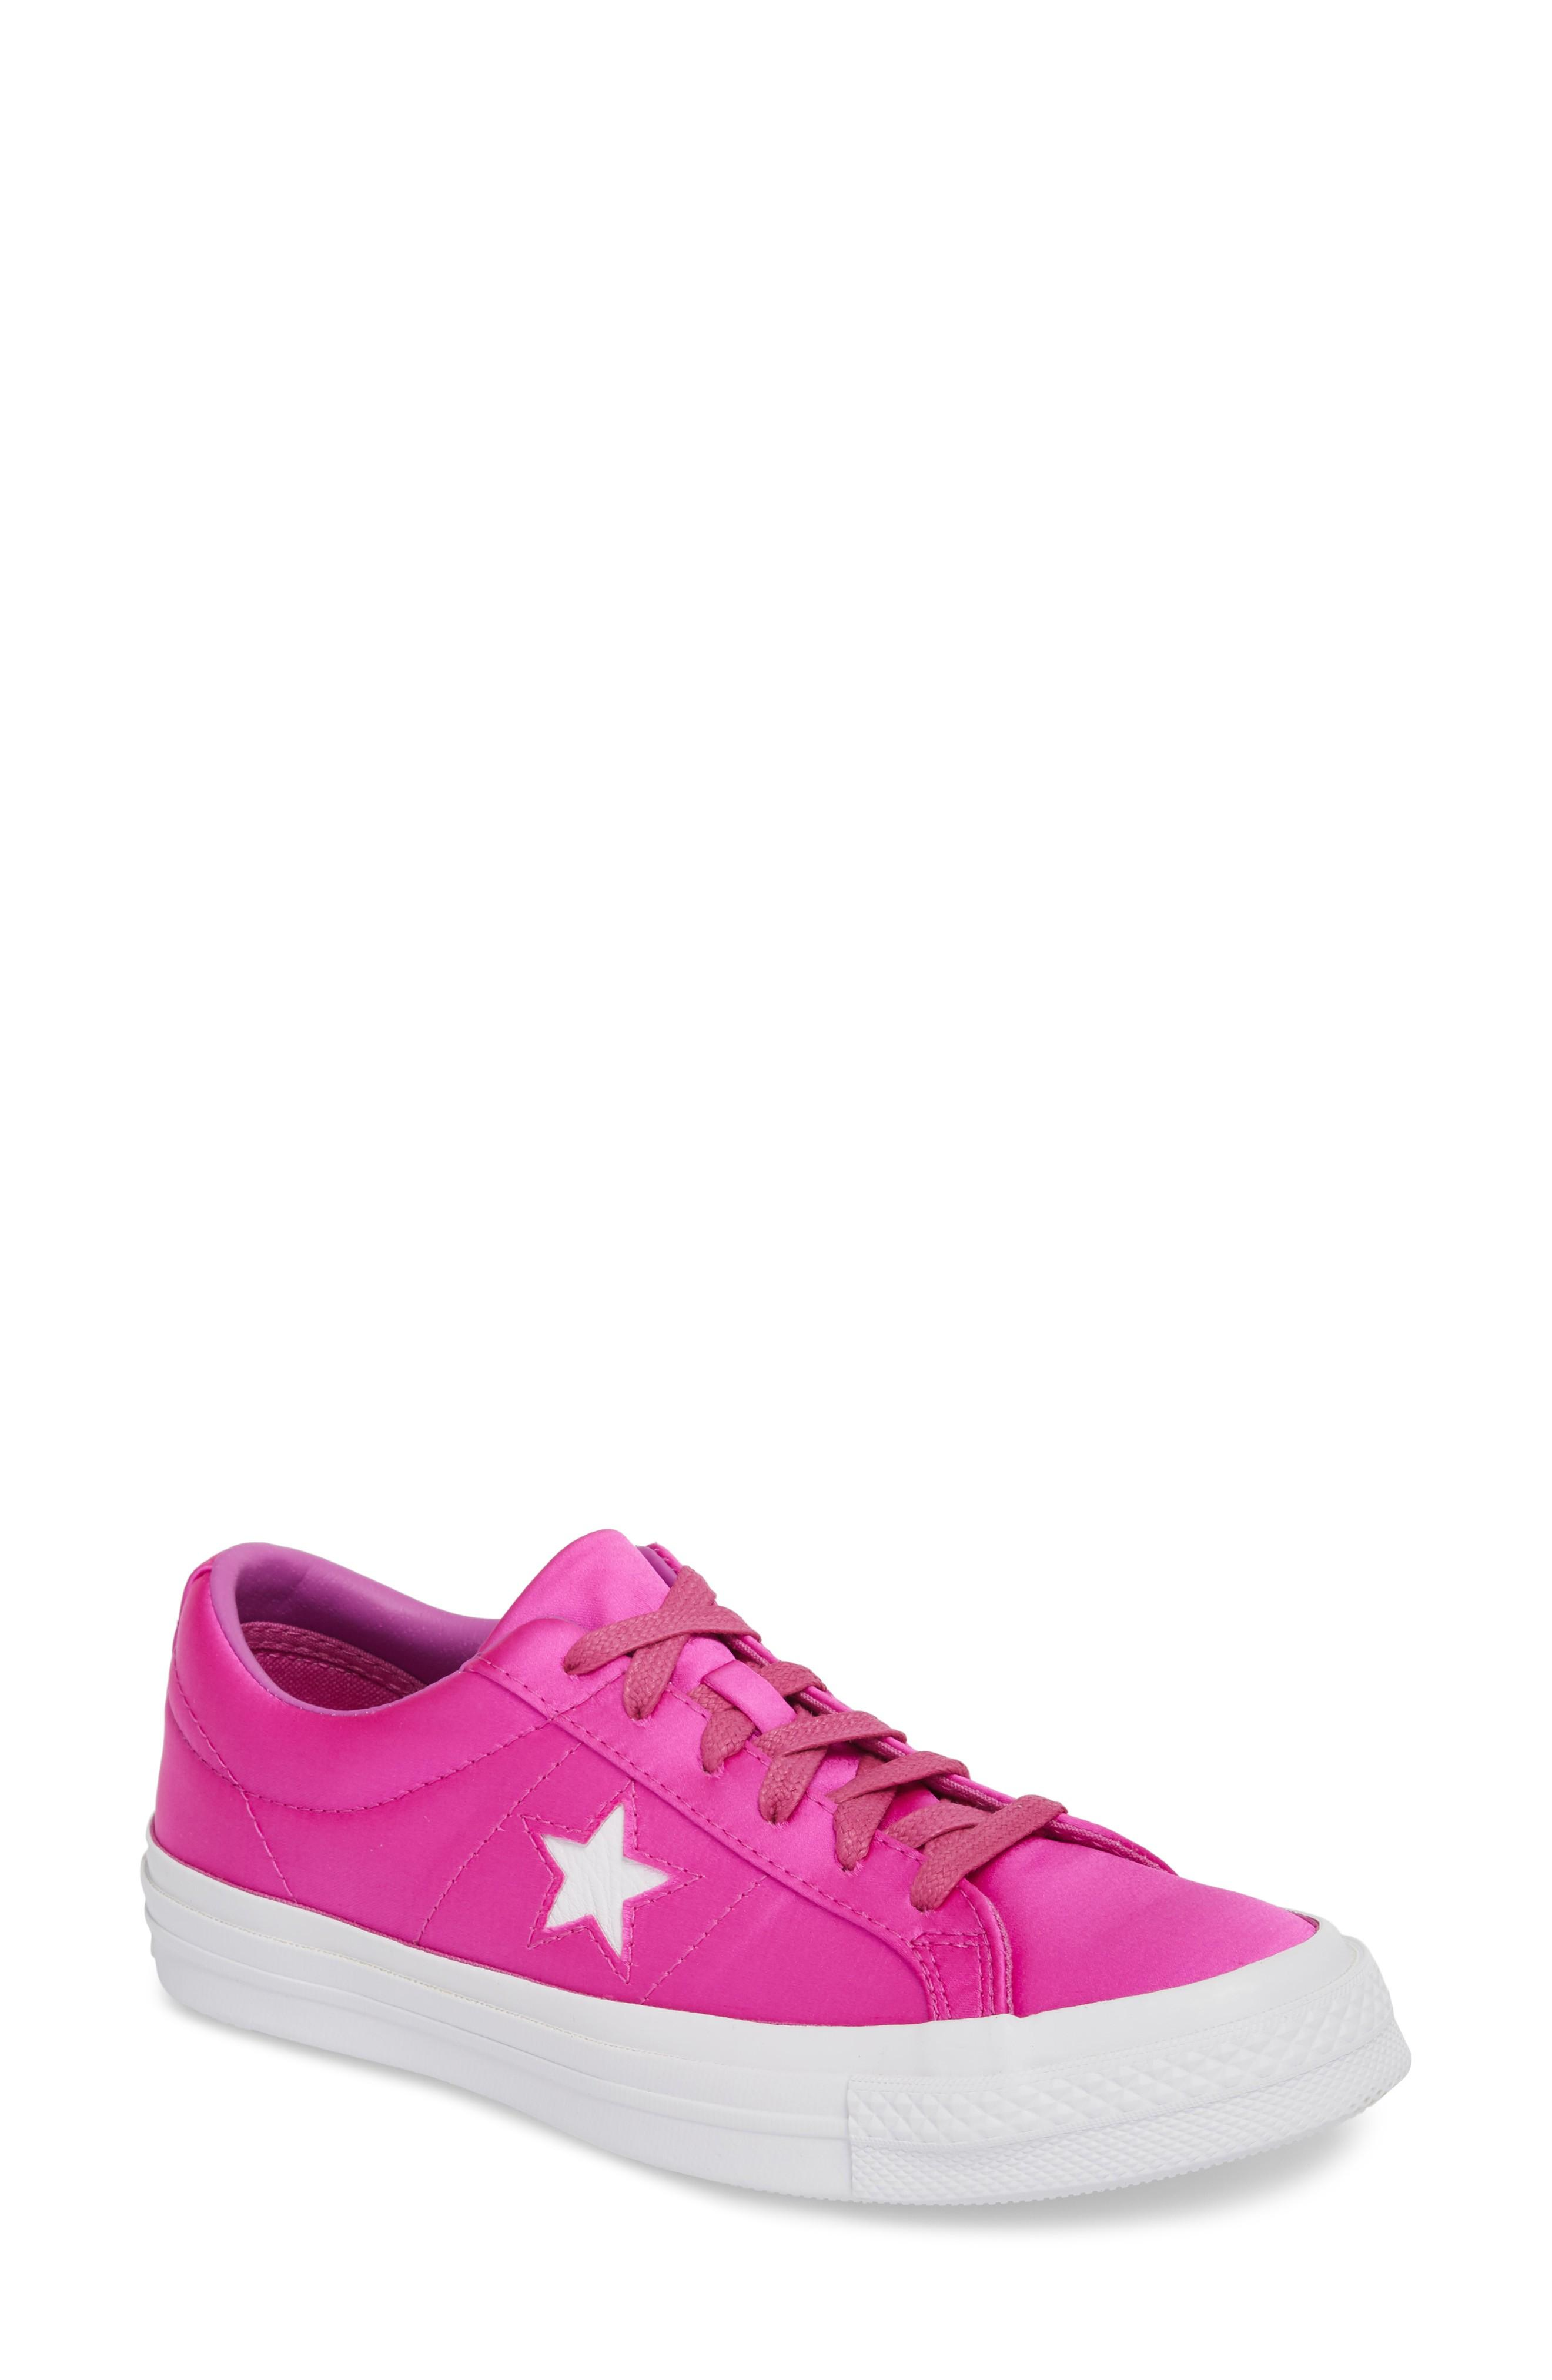 ccd2beef17a6 Converse Chuck Taylor All Star One Star Low-Top Sneaker In Hyper Magenta